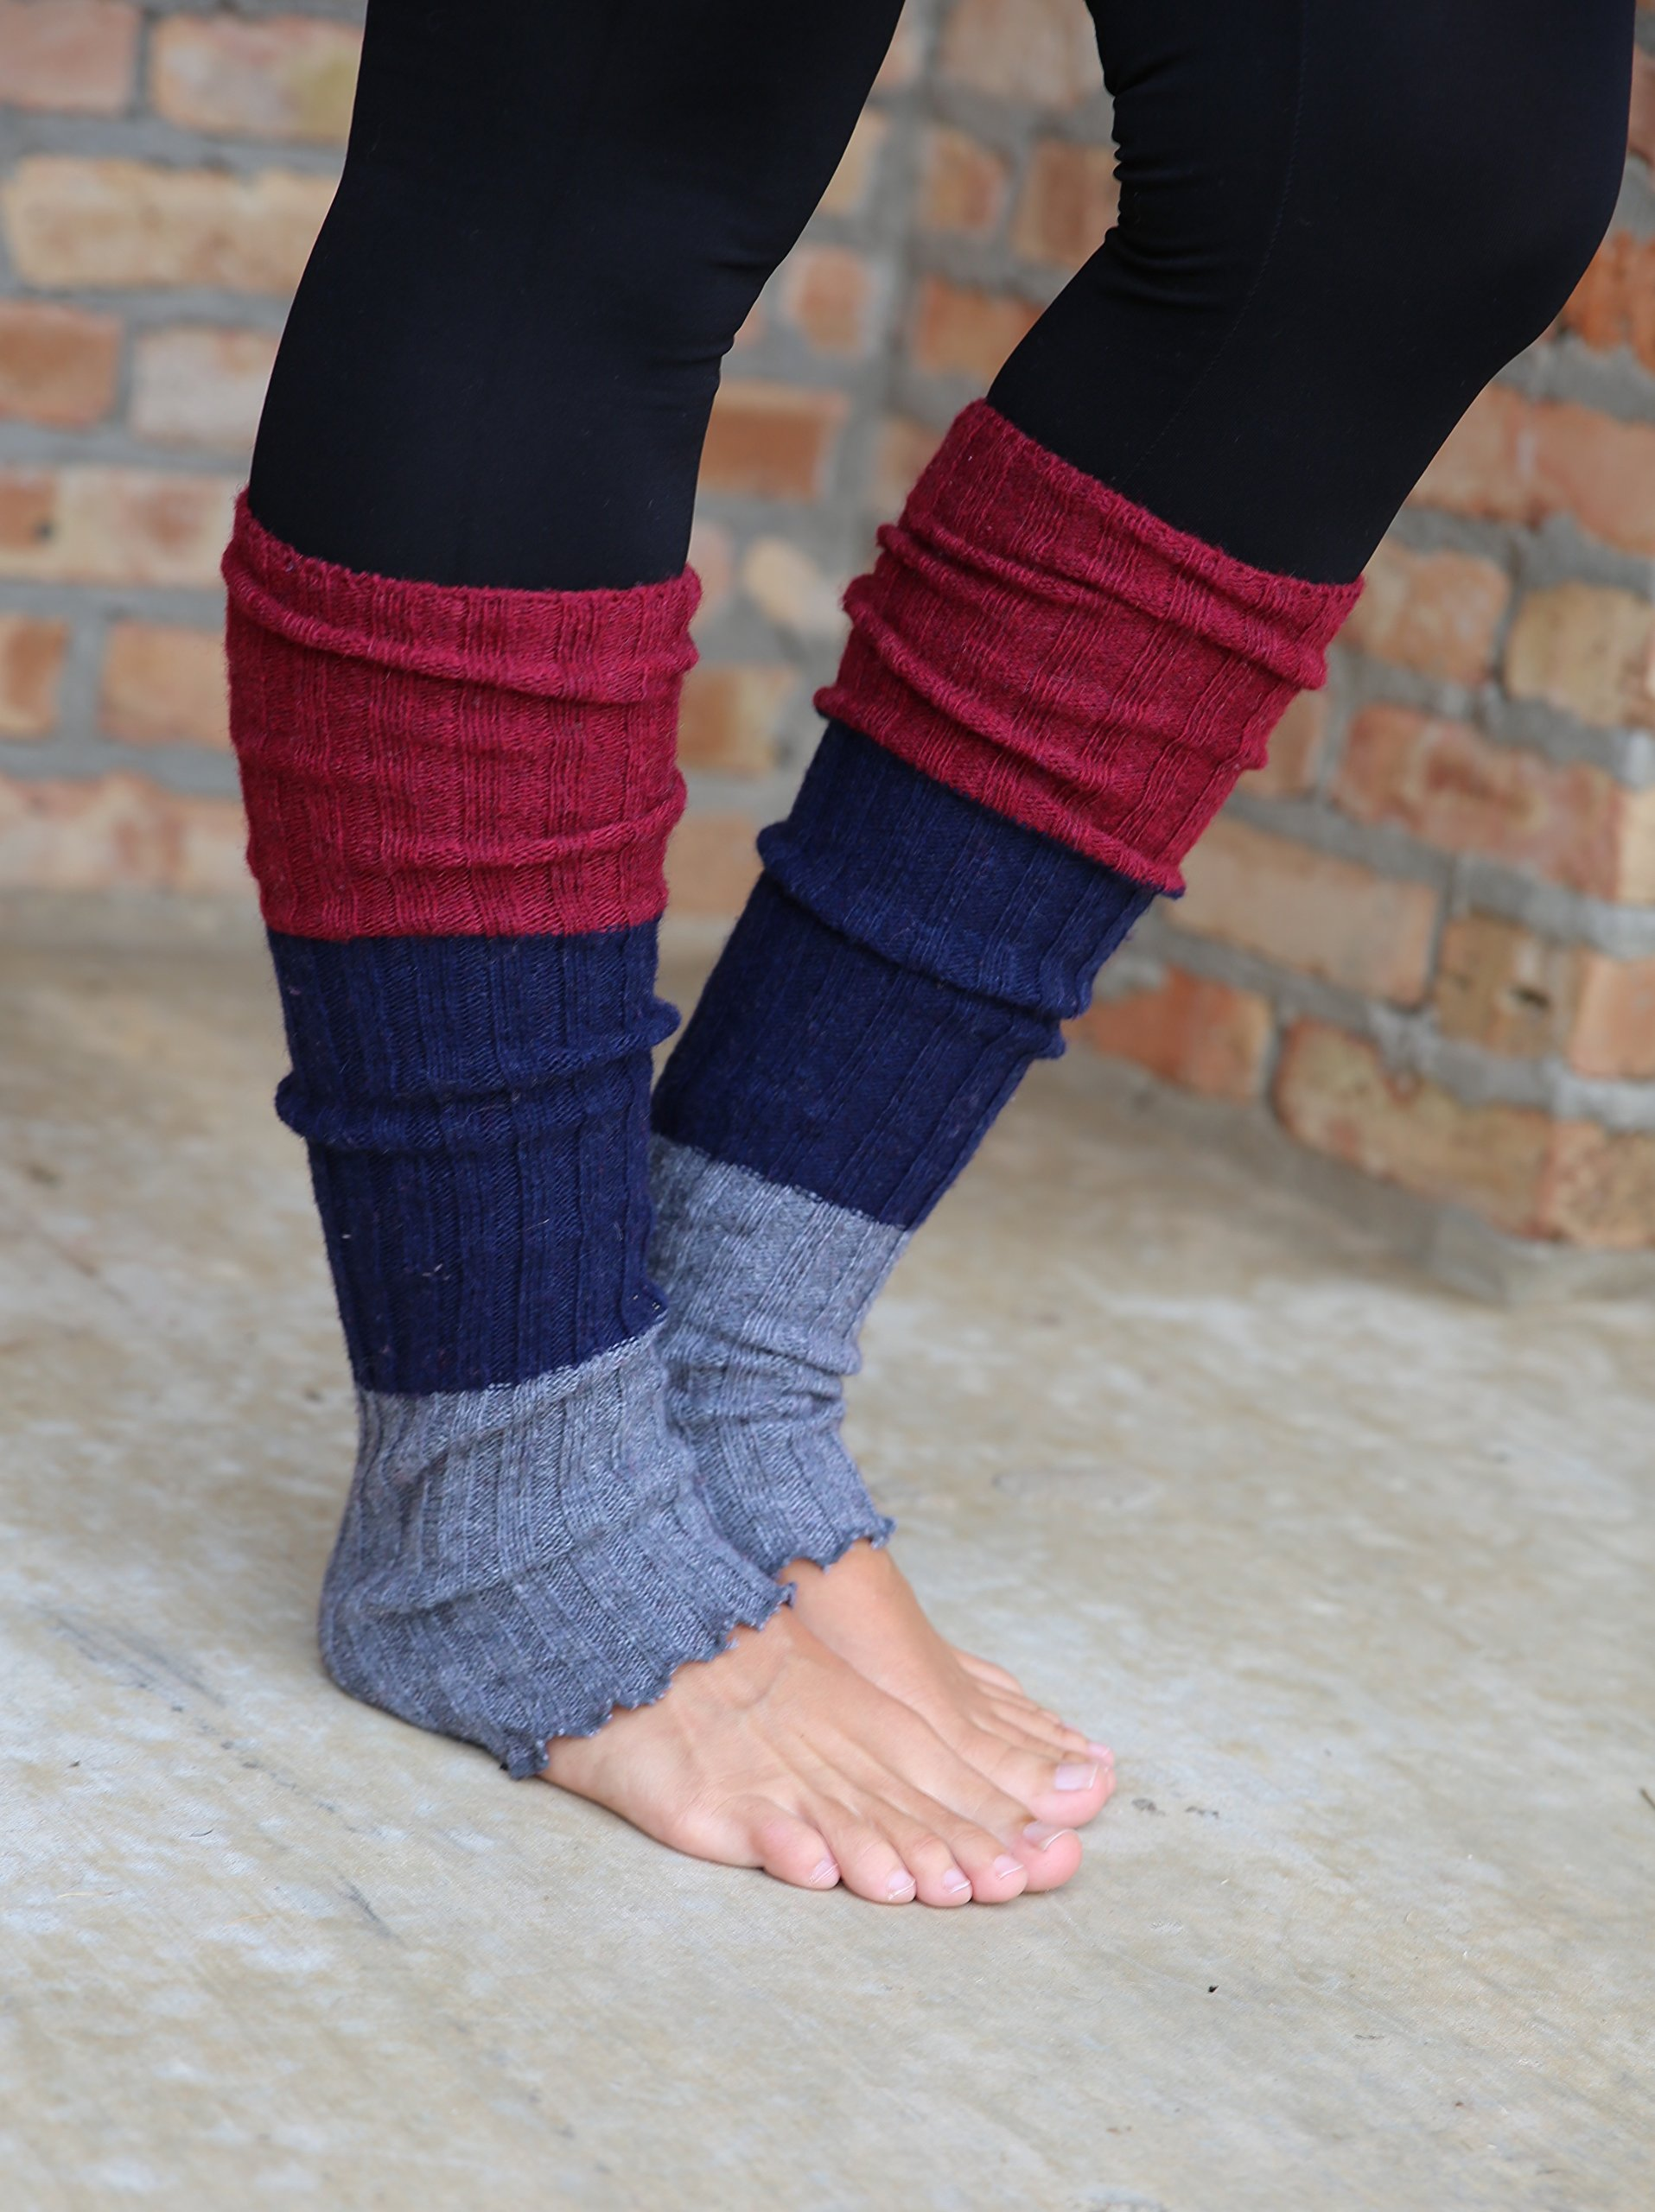 Lucky Love (TM) Striped Multicolor Reversible Knit Leg Warmers by Lucky Love (Image #2)